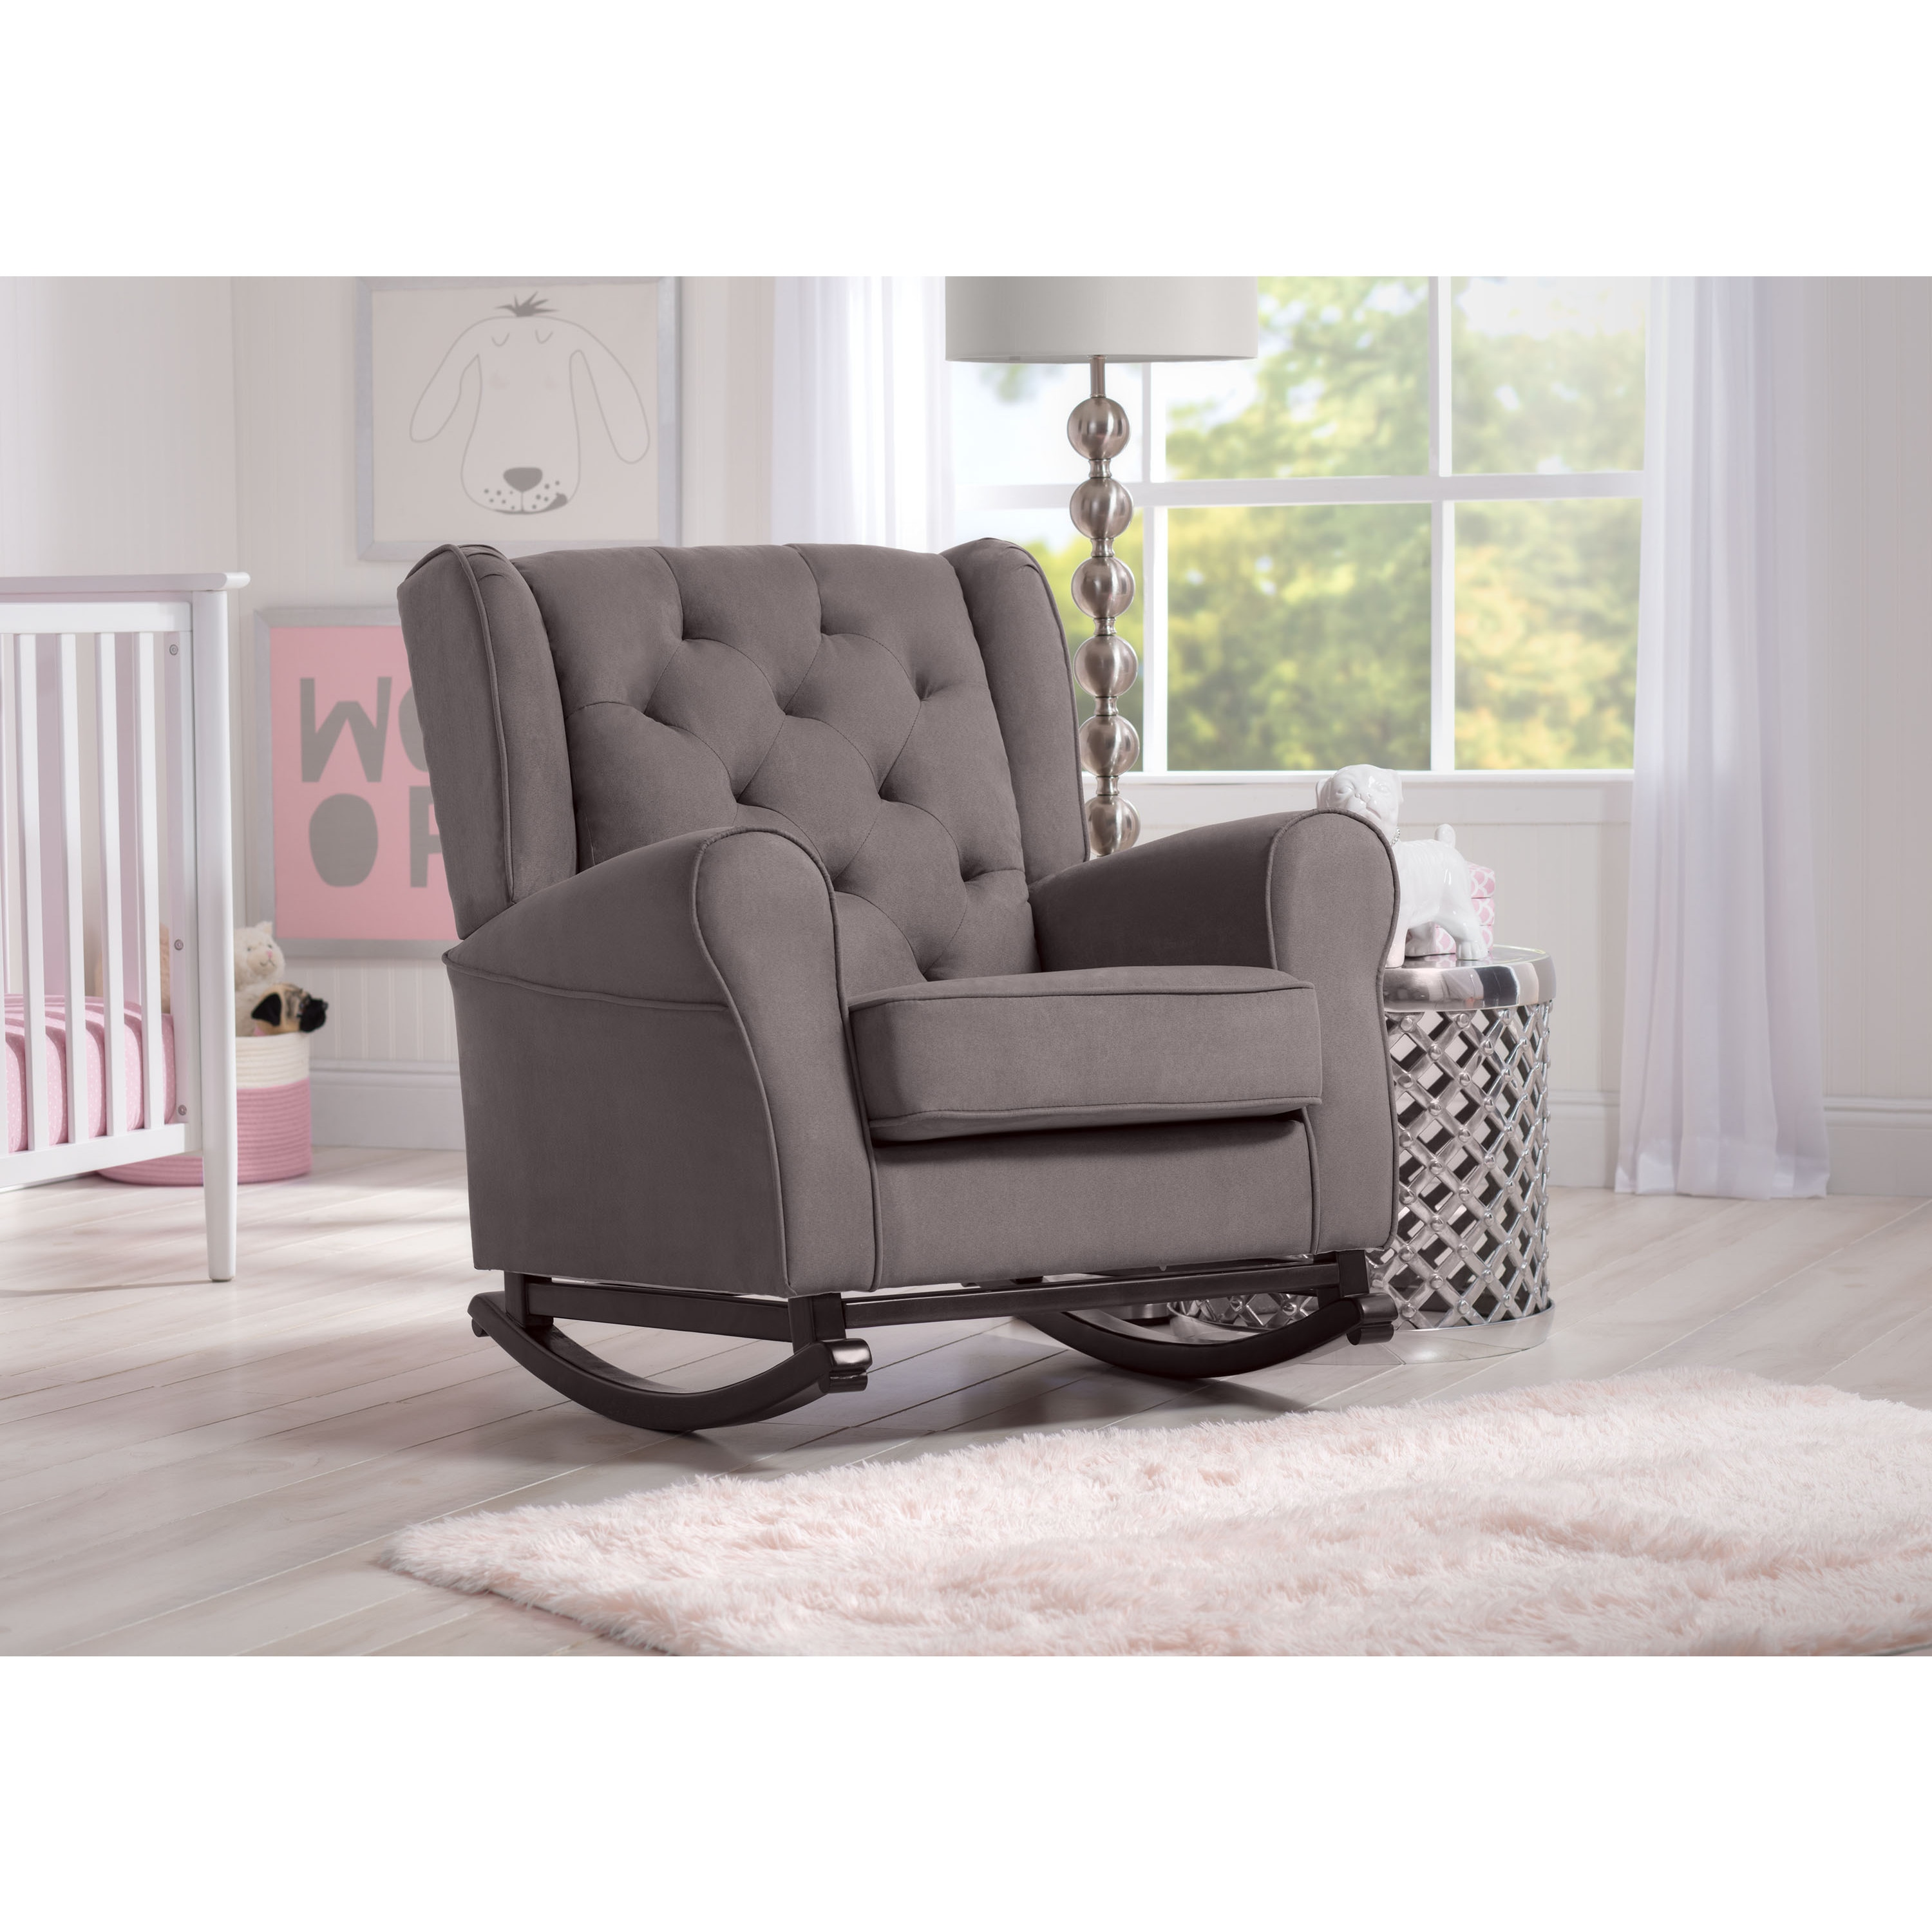 Delta Children Emma Nursery Rocking Chair Graphite